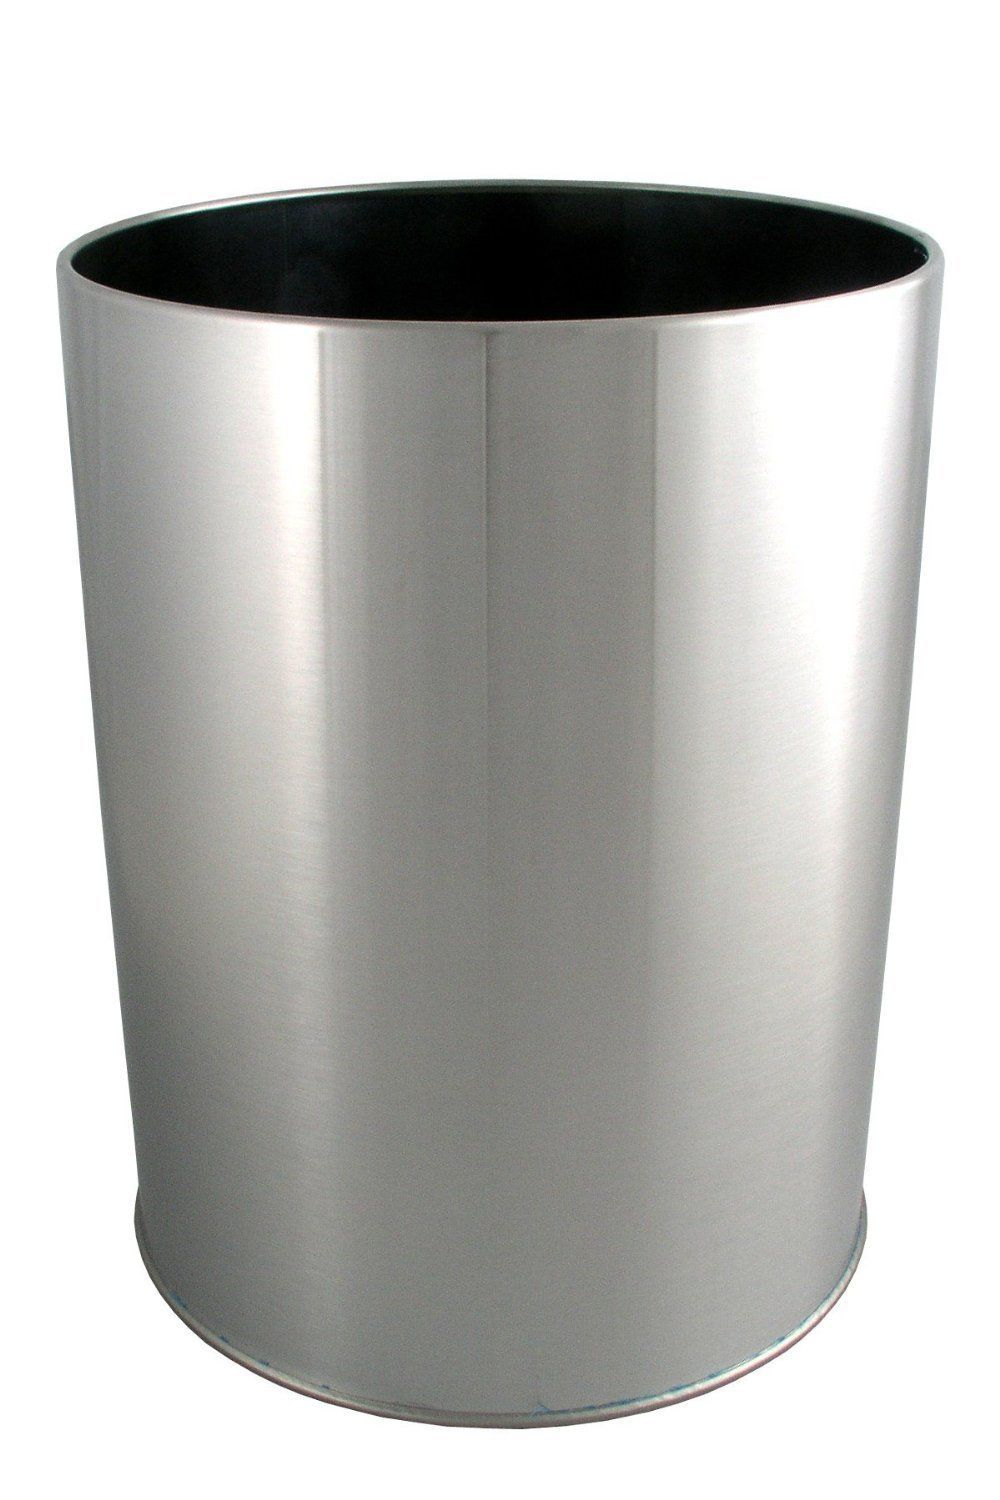 12 42 2 Gallons Heavy Duty Brushed Nickel Finish Round Waste Basket Trash Can Bathroom